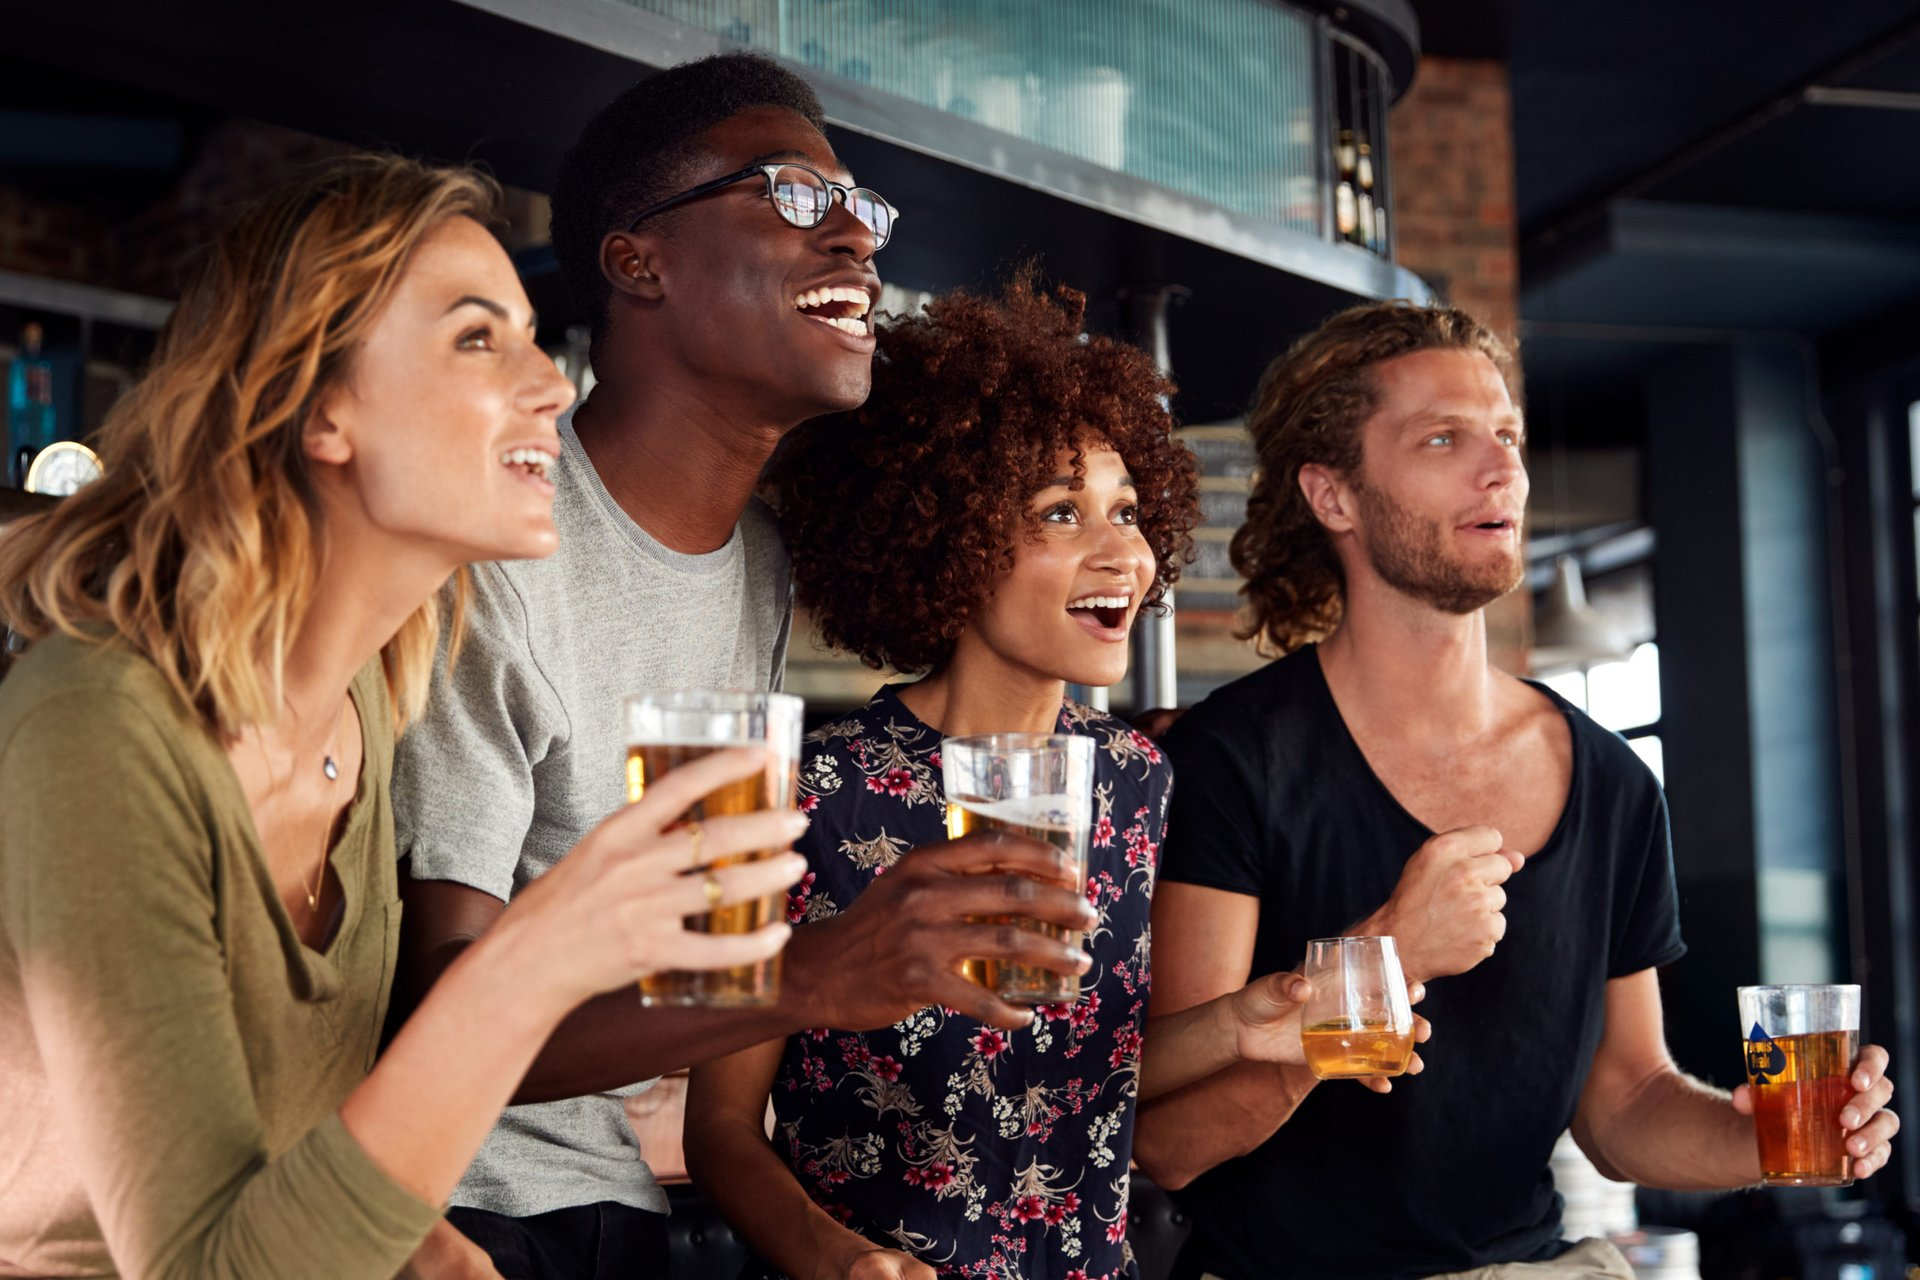 Friends watching a game at a sports bar